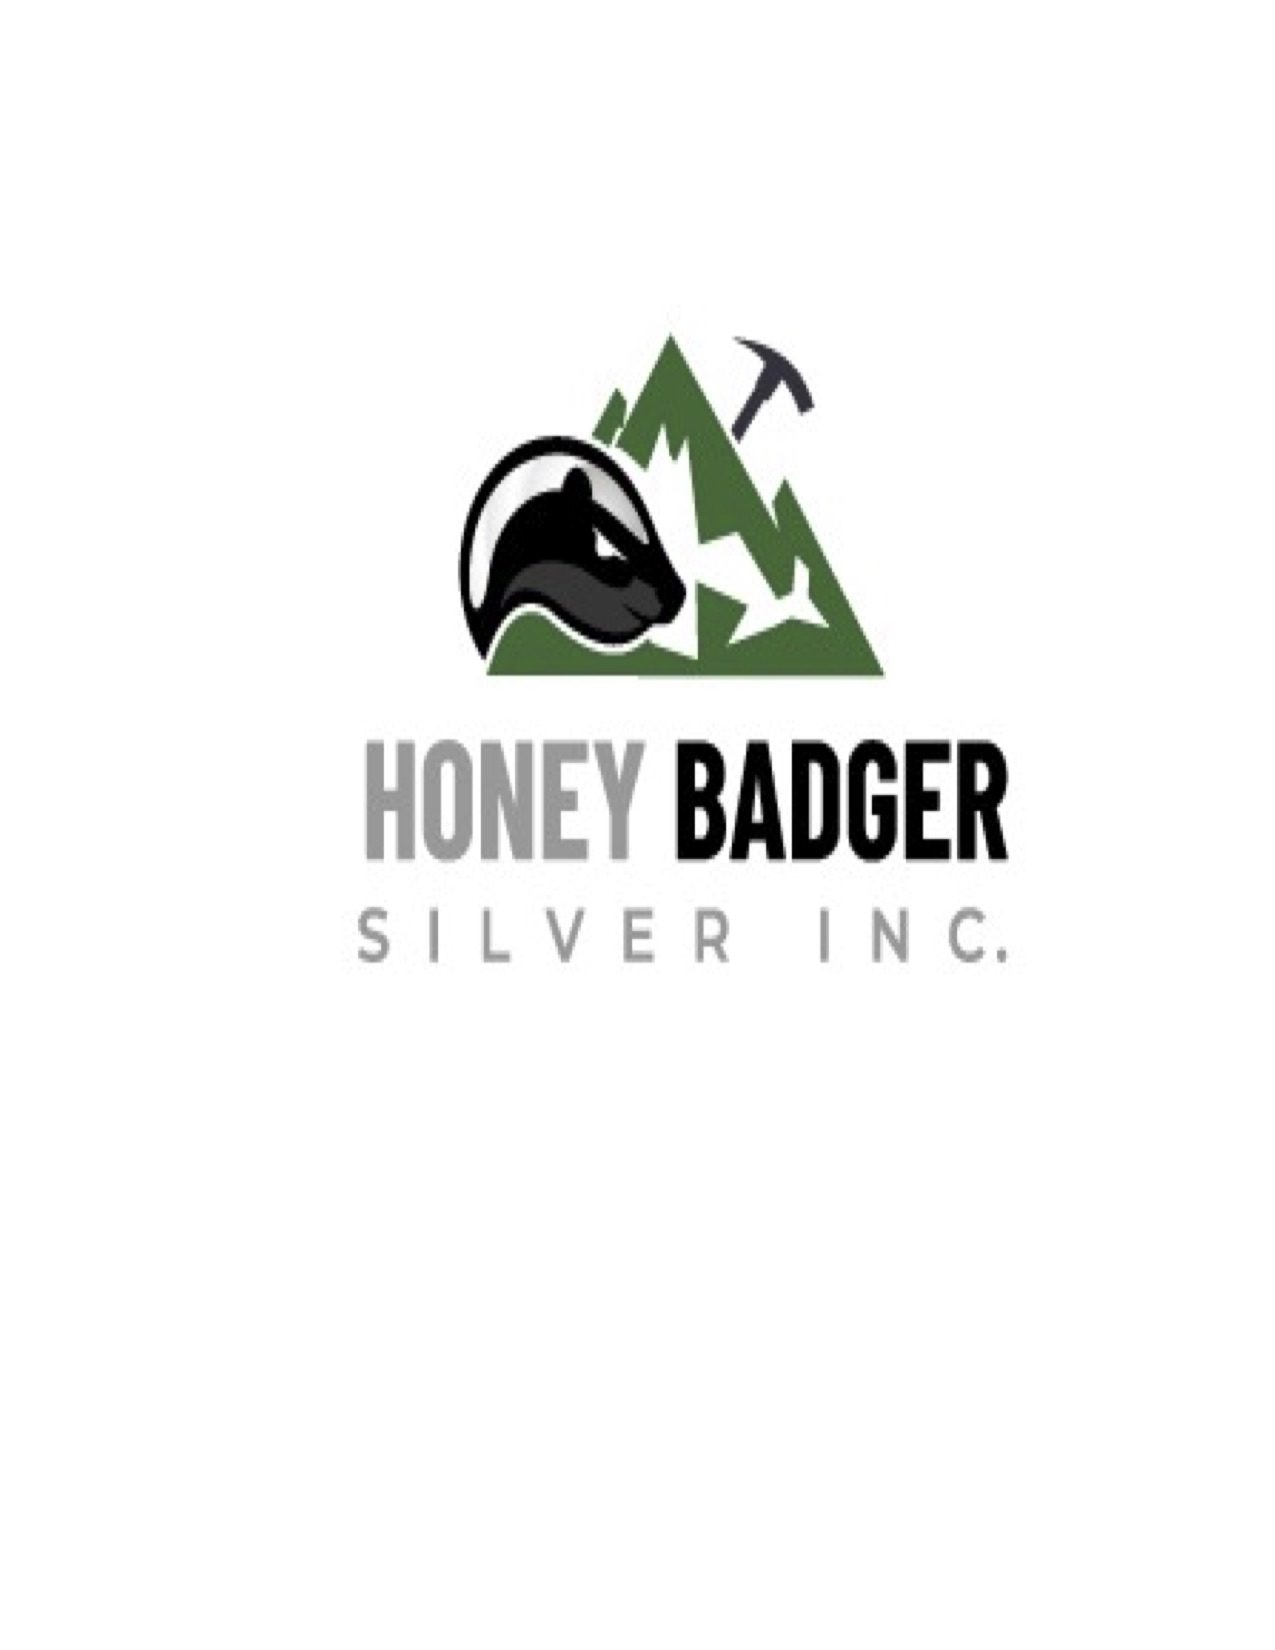 Honey Badger Appoints New Chief Financial Officer